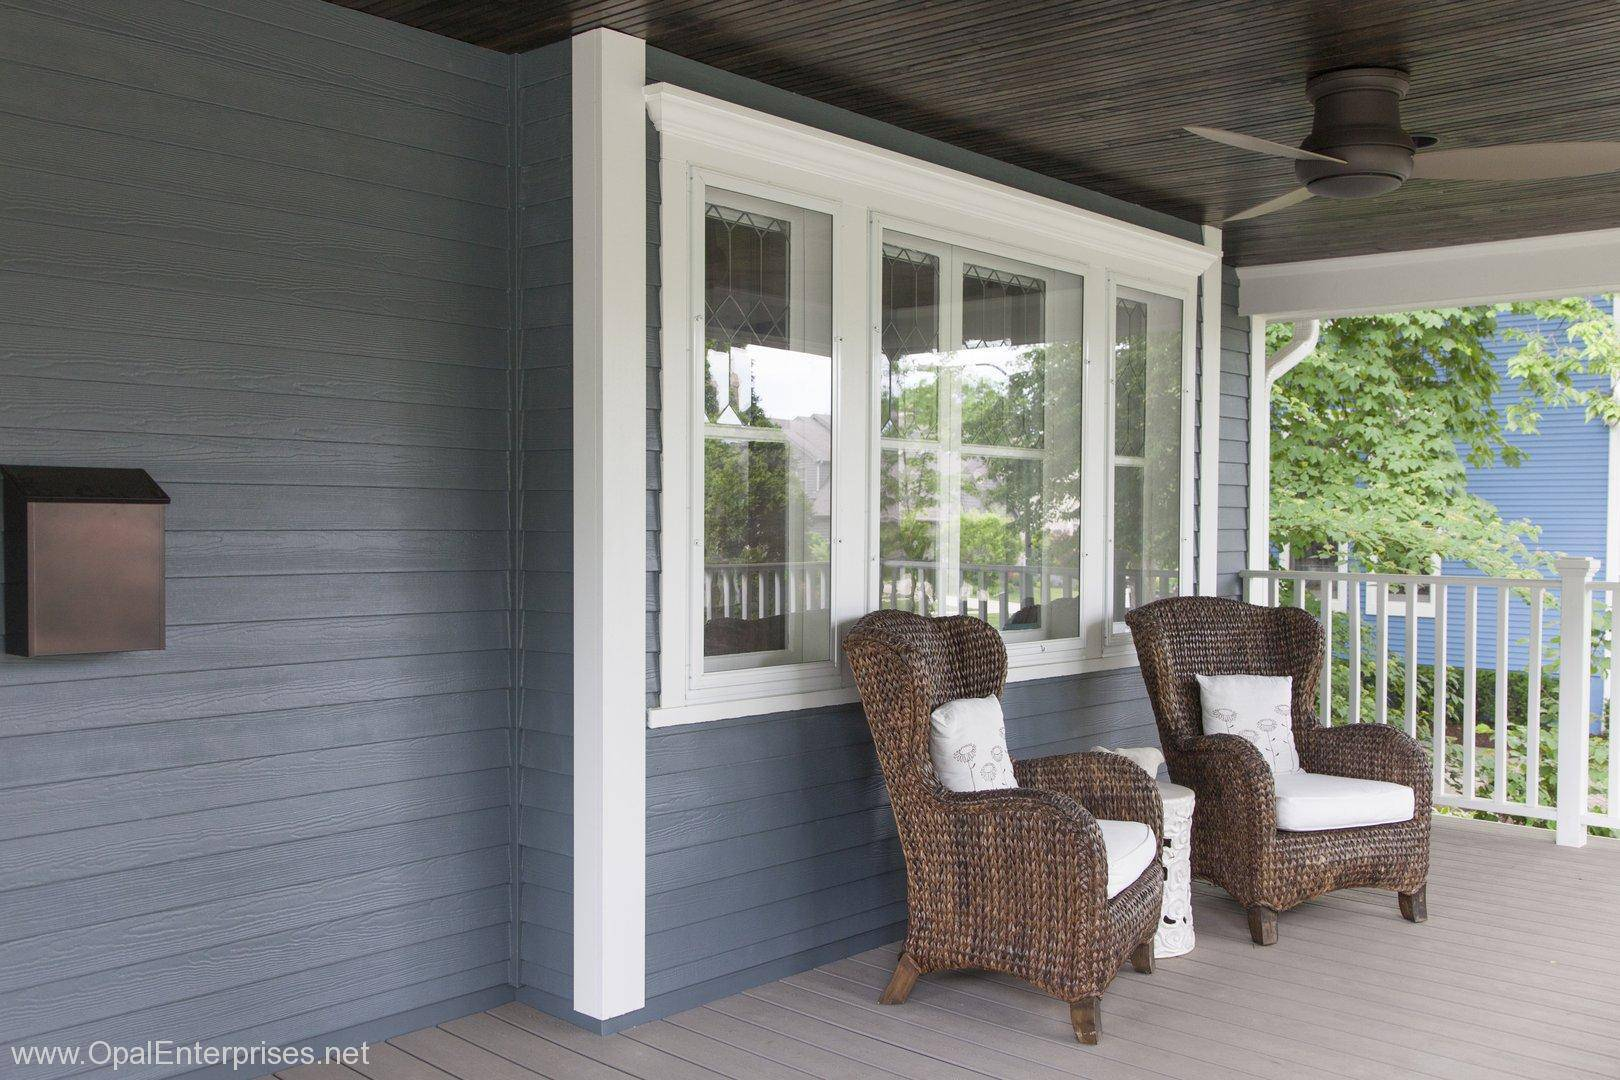 Front Porch Chairs Wow Complete Exterior Remodel With Evening Blue Fiber